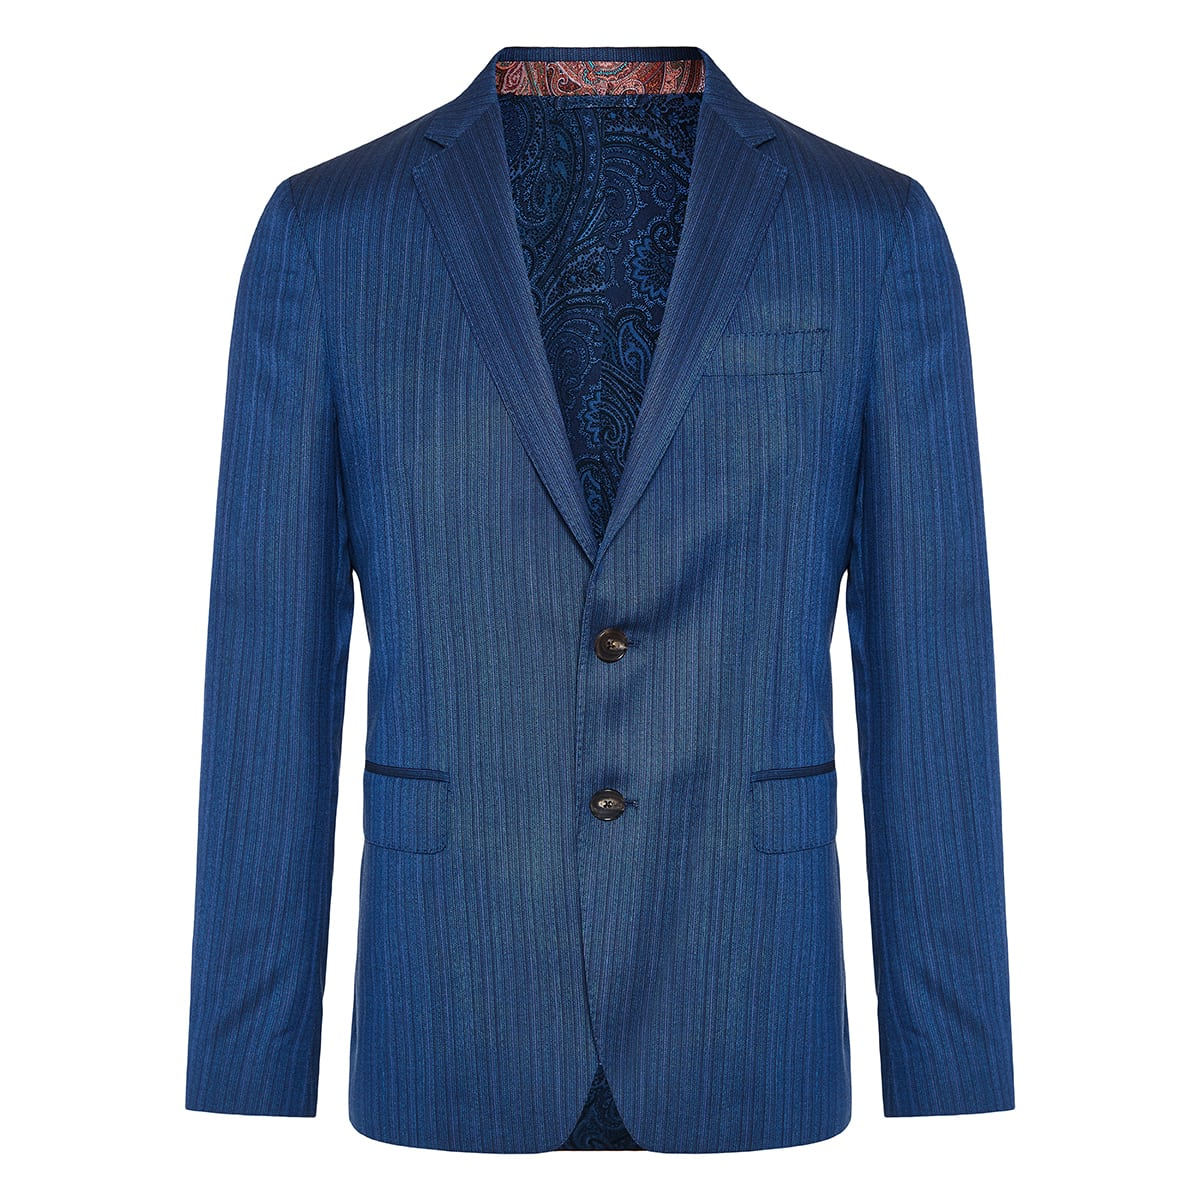 Two-piece striped wool suit